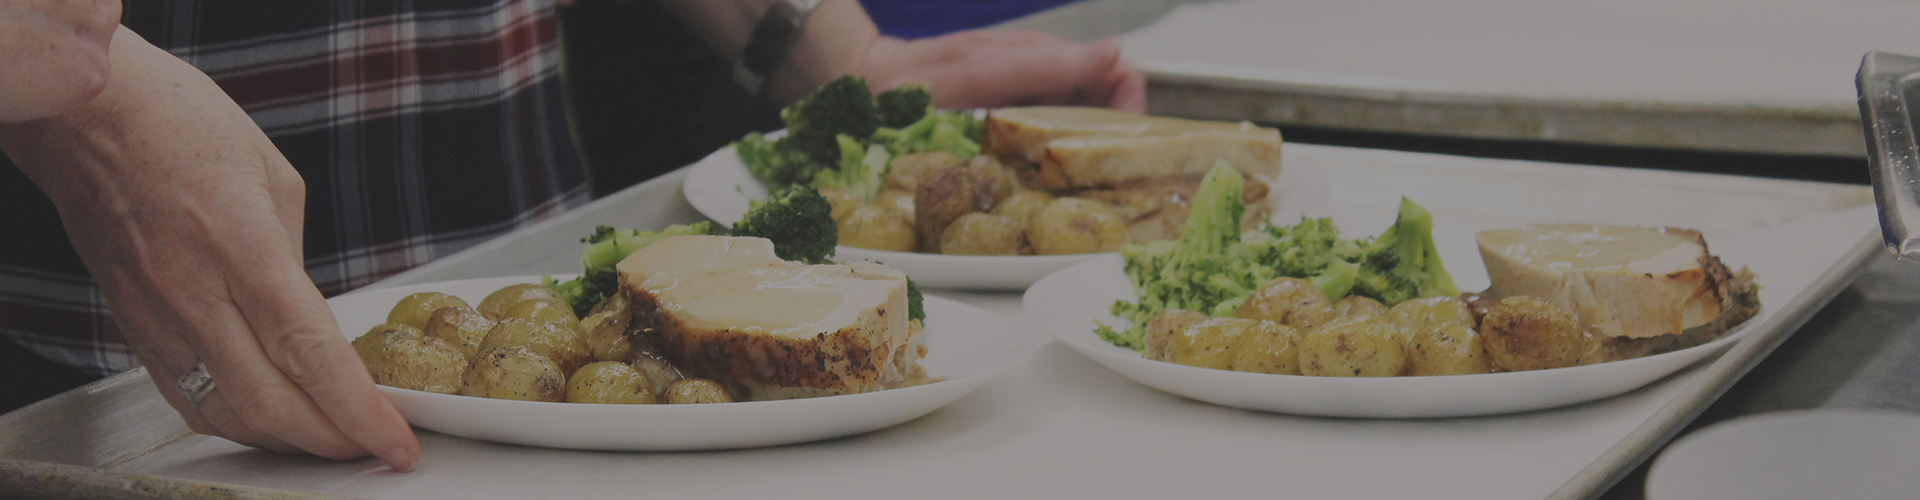 Close up of someone holding a tray bearing three plates of meat, broccoli, and potatoes. A line of other people and trays can be seen out of focus and lined up next to this person. A black filter darkens the image.